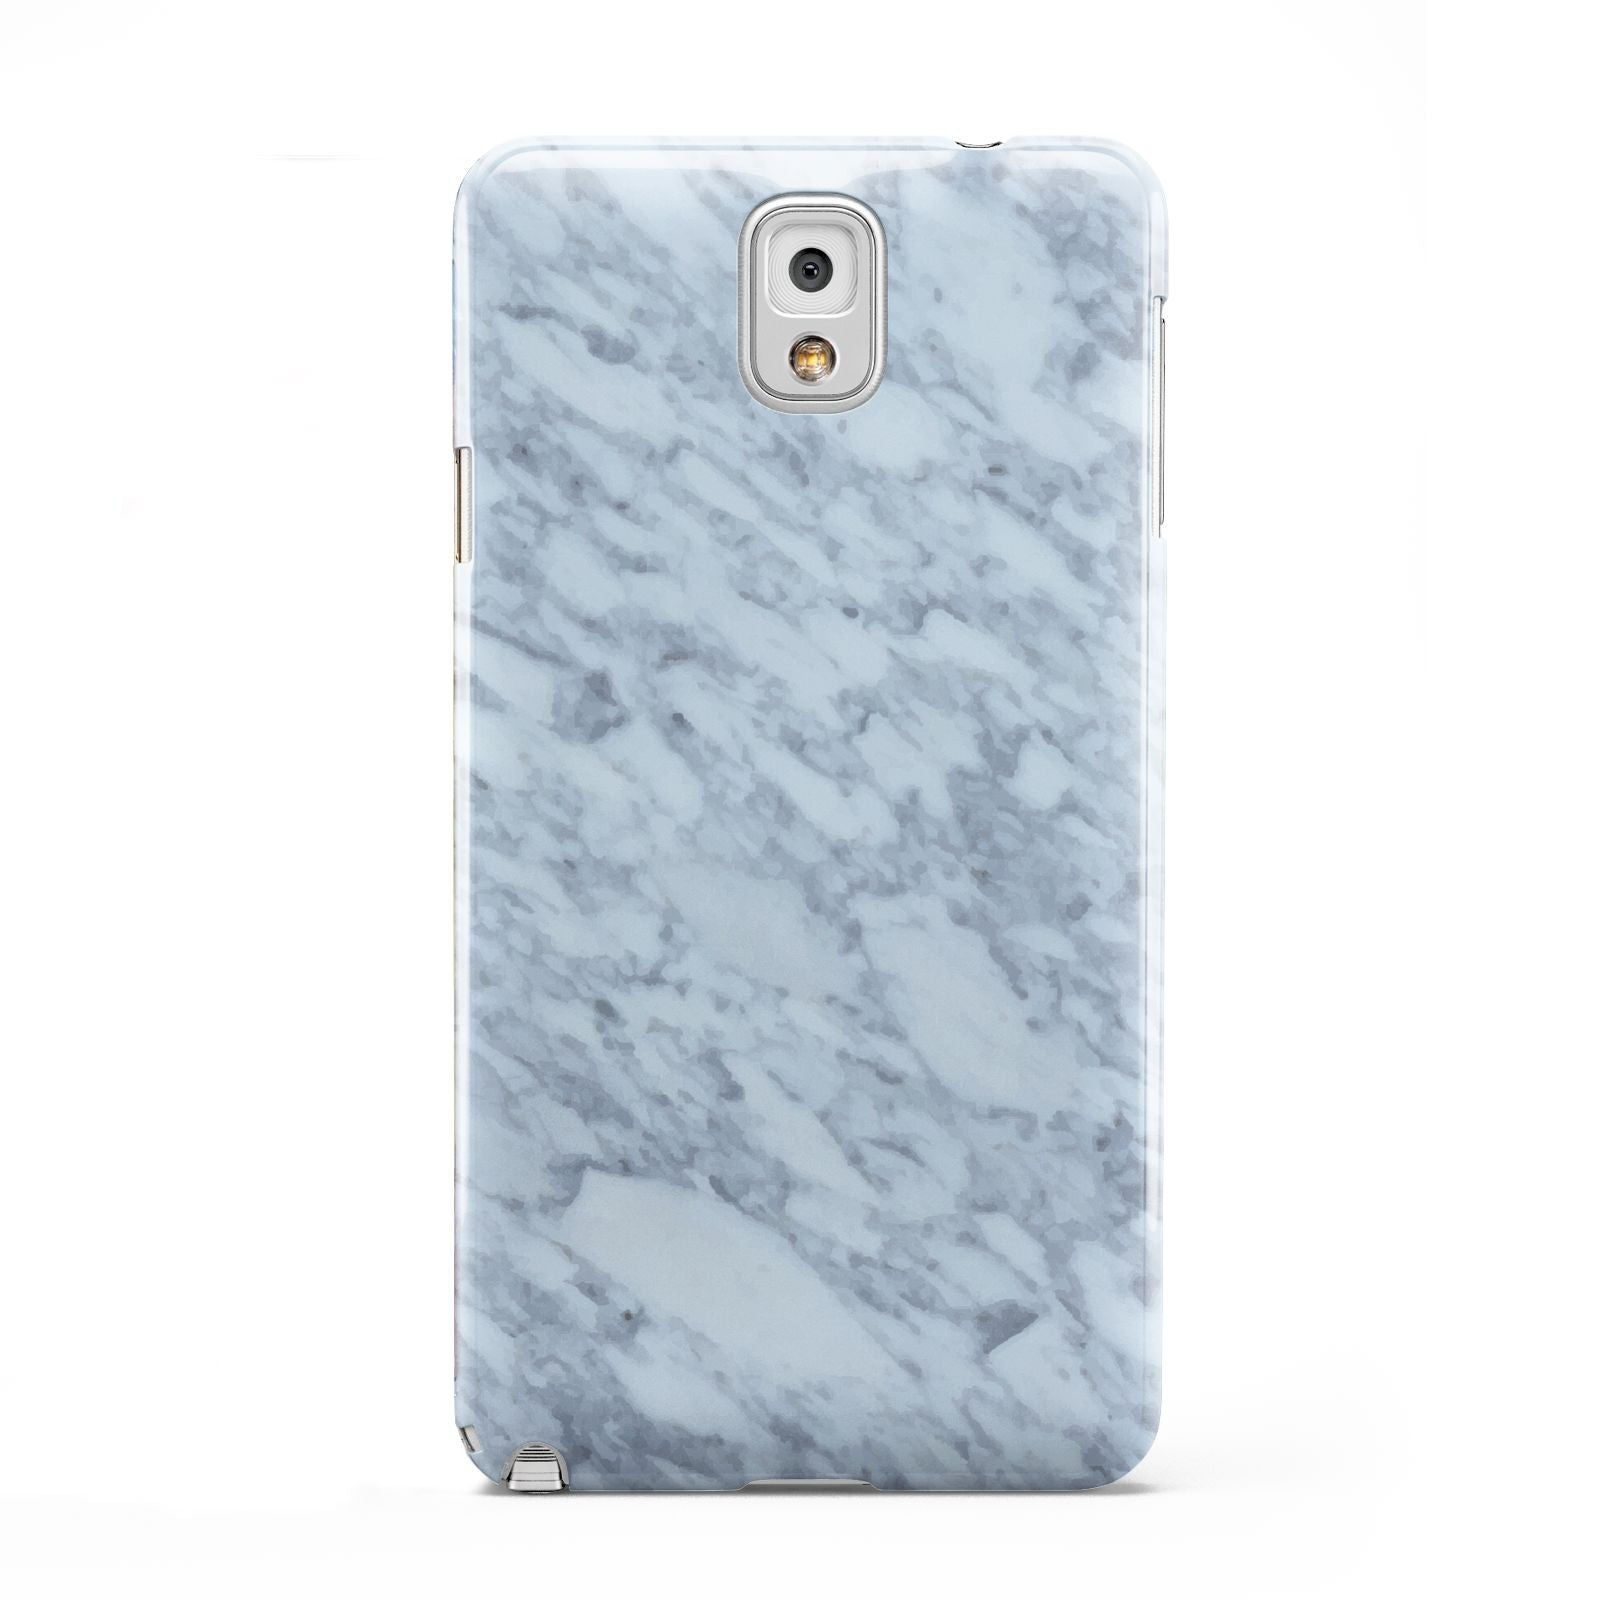 Faux Marble Grey 2 Samsung Galaxy Note 3 Case